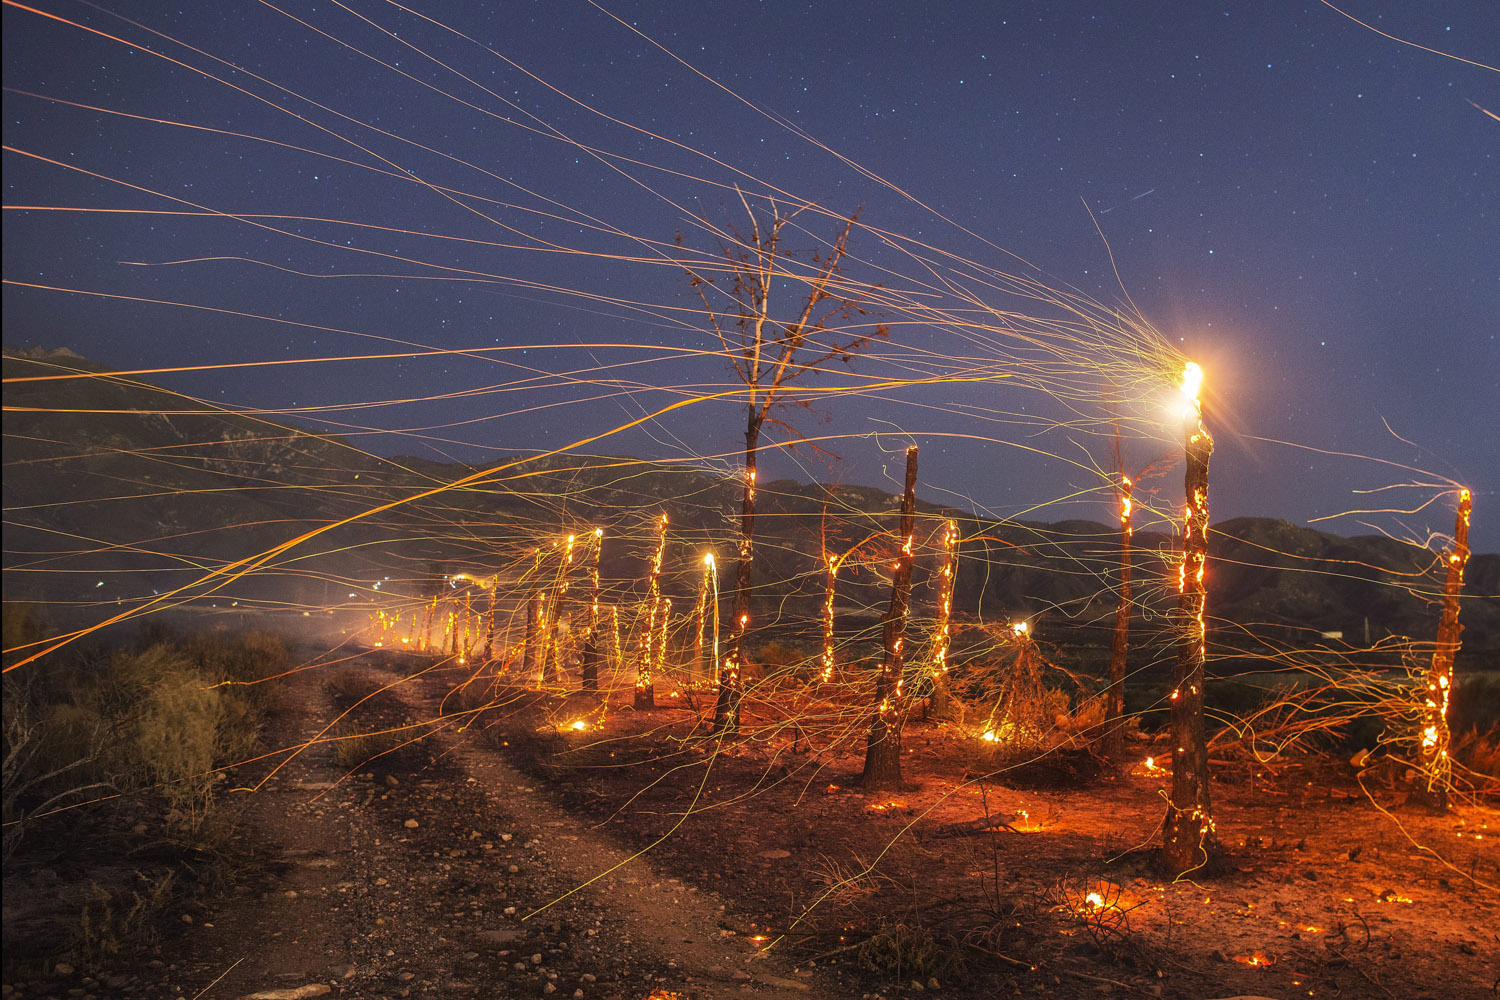 Apr. 29, 2014. A long exposure image of embers flying off burnt out  trees following the wind driven wildfire ranging in the mountain area near Rancho Cucamonga, Southern California.